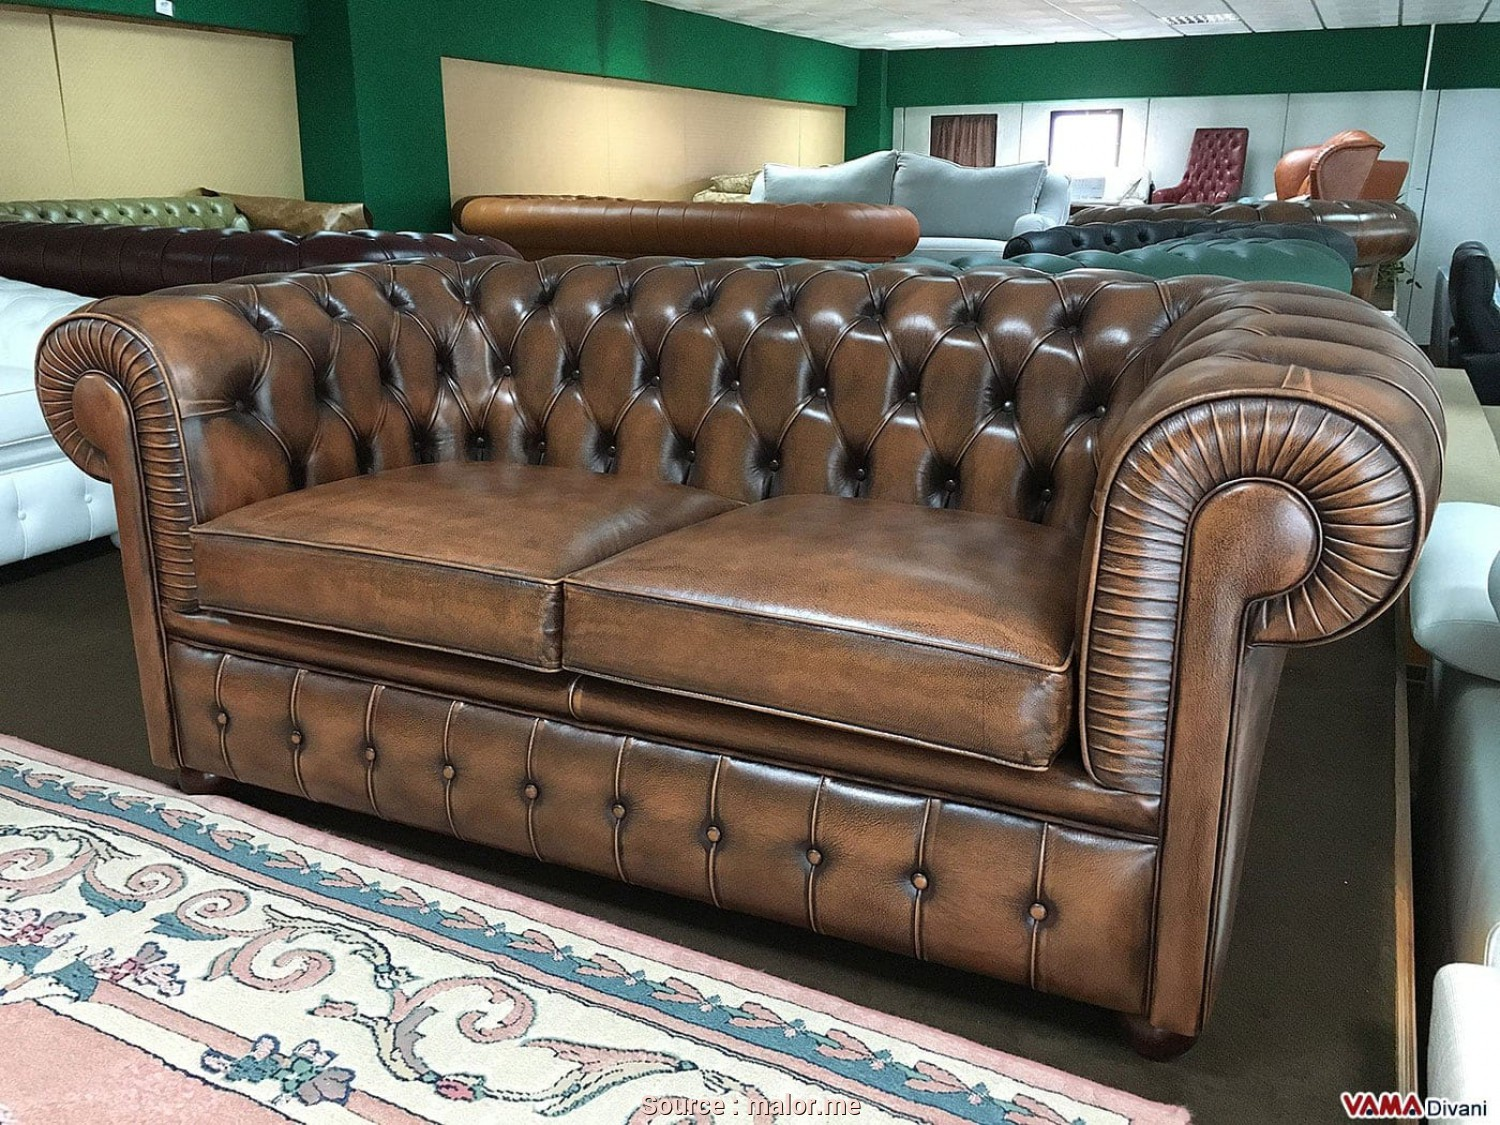 Vendo Divano Chester Usato, Classy Full Size Of Divani Chesterfield Originali Inglesi Chesterfield Sofa Usato 4K Wiki Wallpapers 2018 Divano Pelle